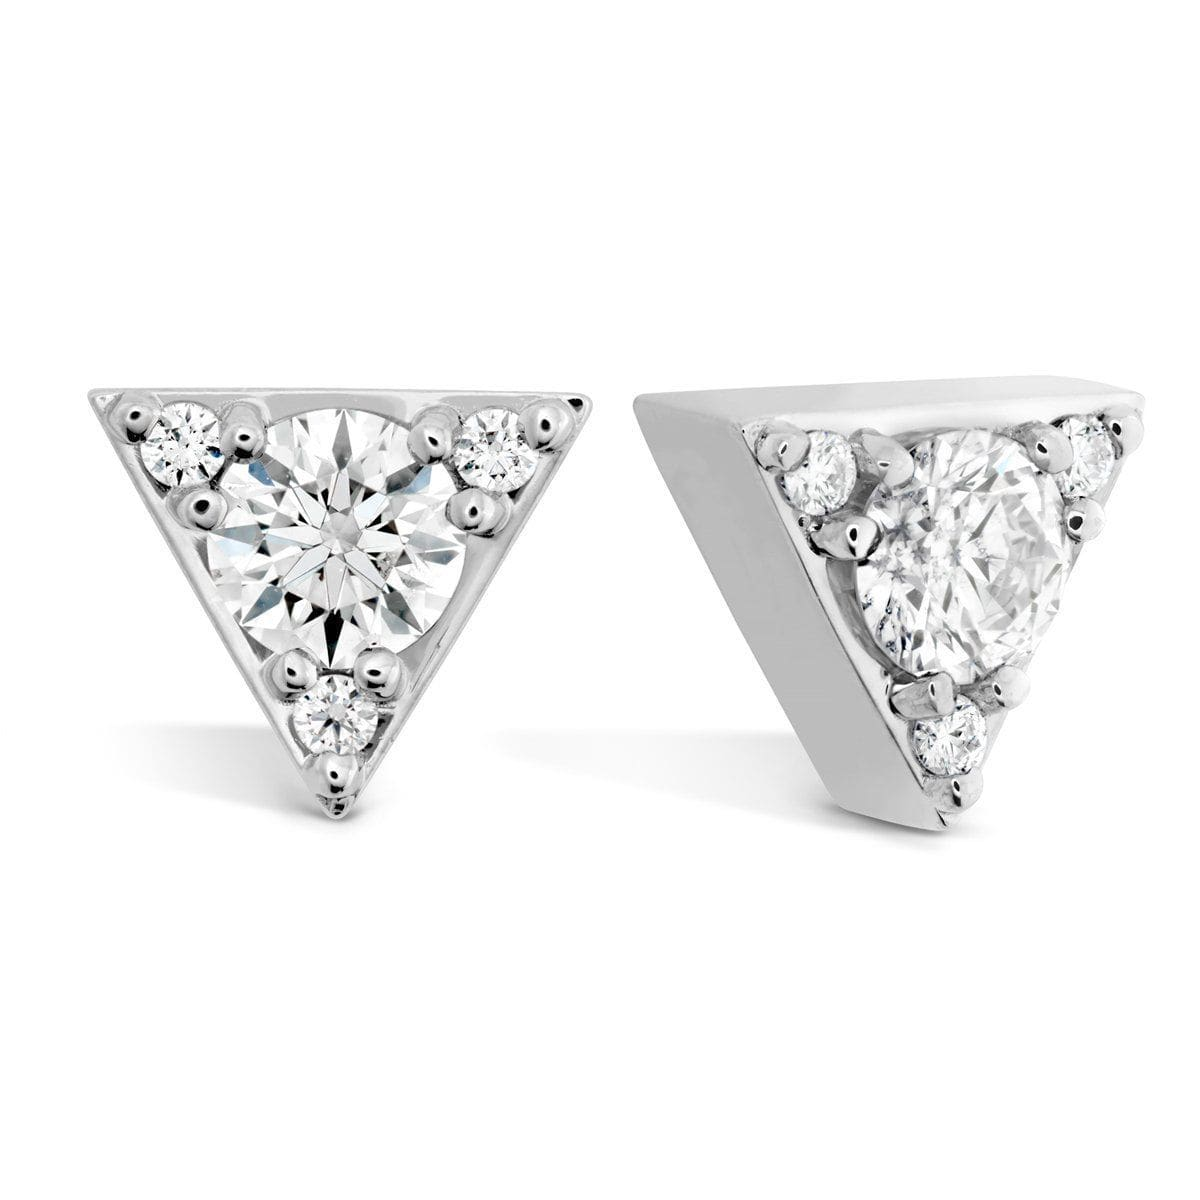 Triplicity Triangle Diamond Stud Earrings - HFETRIT00308-Hearts on Fire-Renee Taylor Gallery